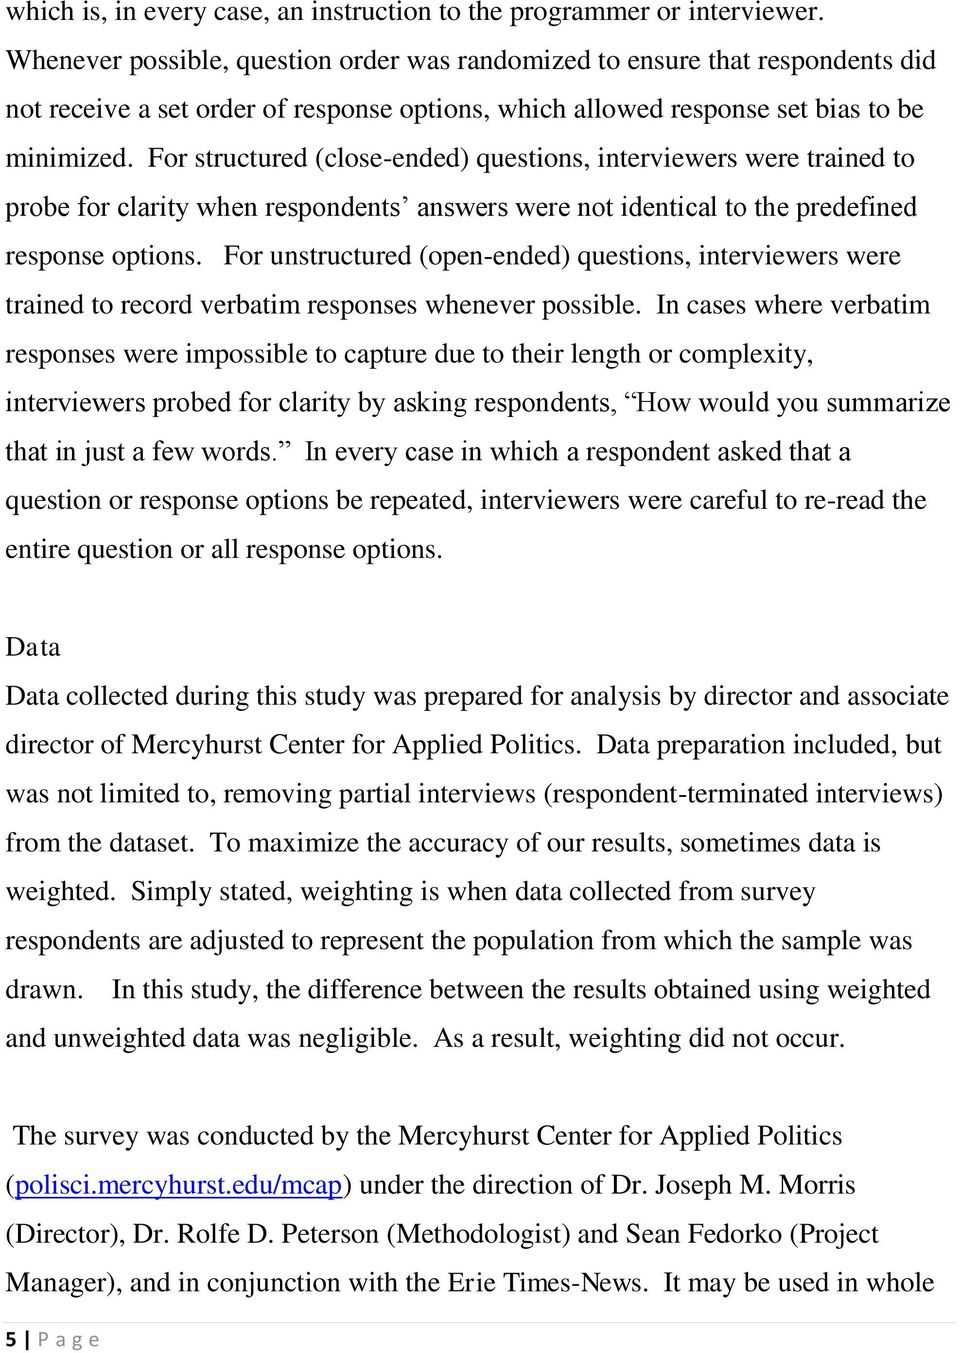 For structured (close-ended) questions, interviewers were trained to probe for clarity when respondents answers were not identical to the predefined response options.